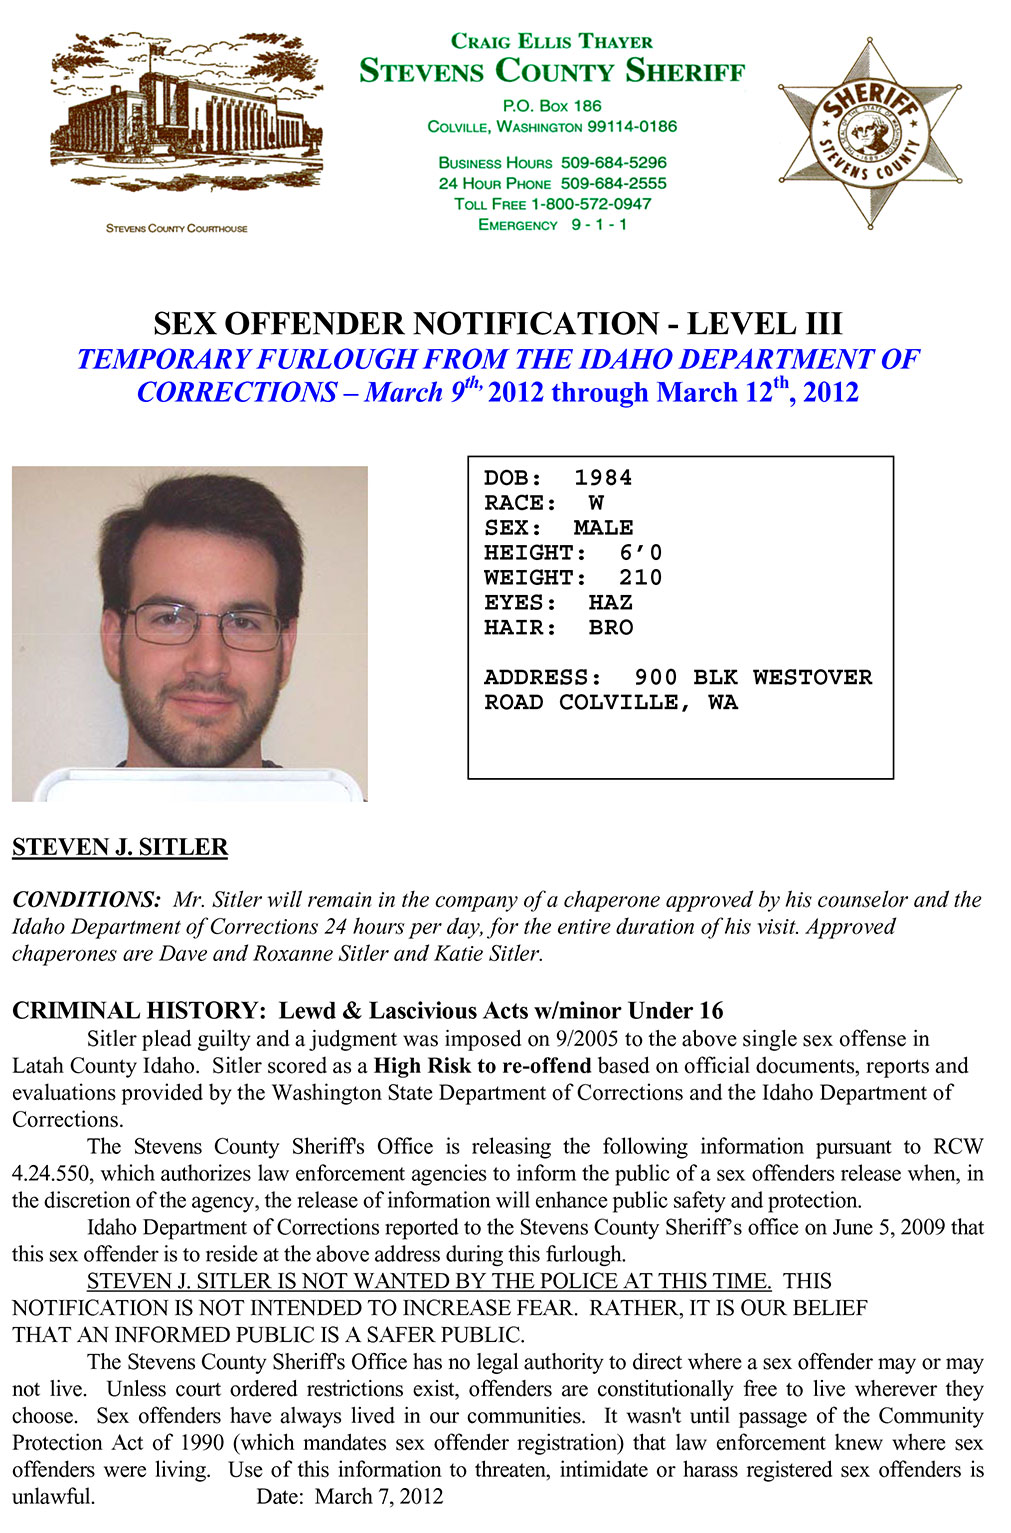 SEX OFFENDER NOTIFICATION — LEVEL III